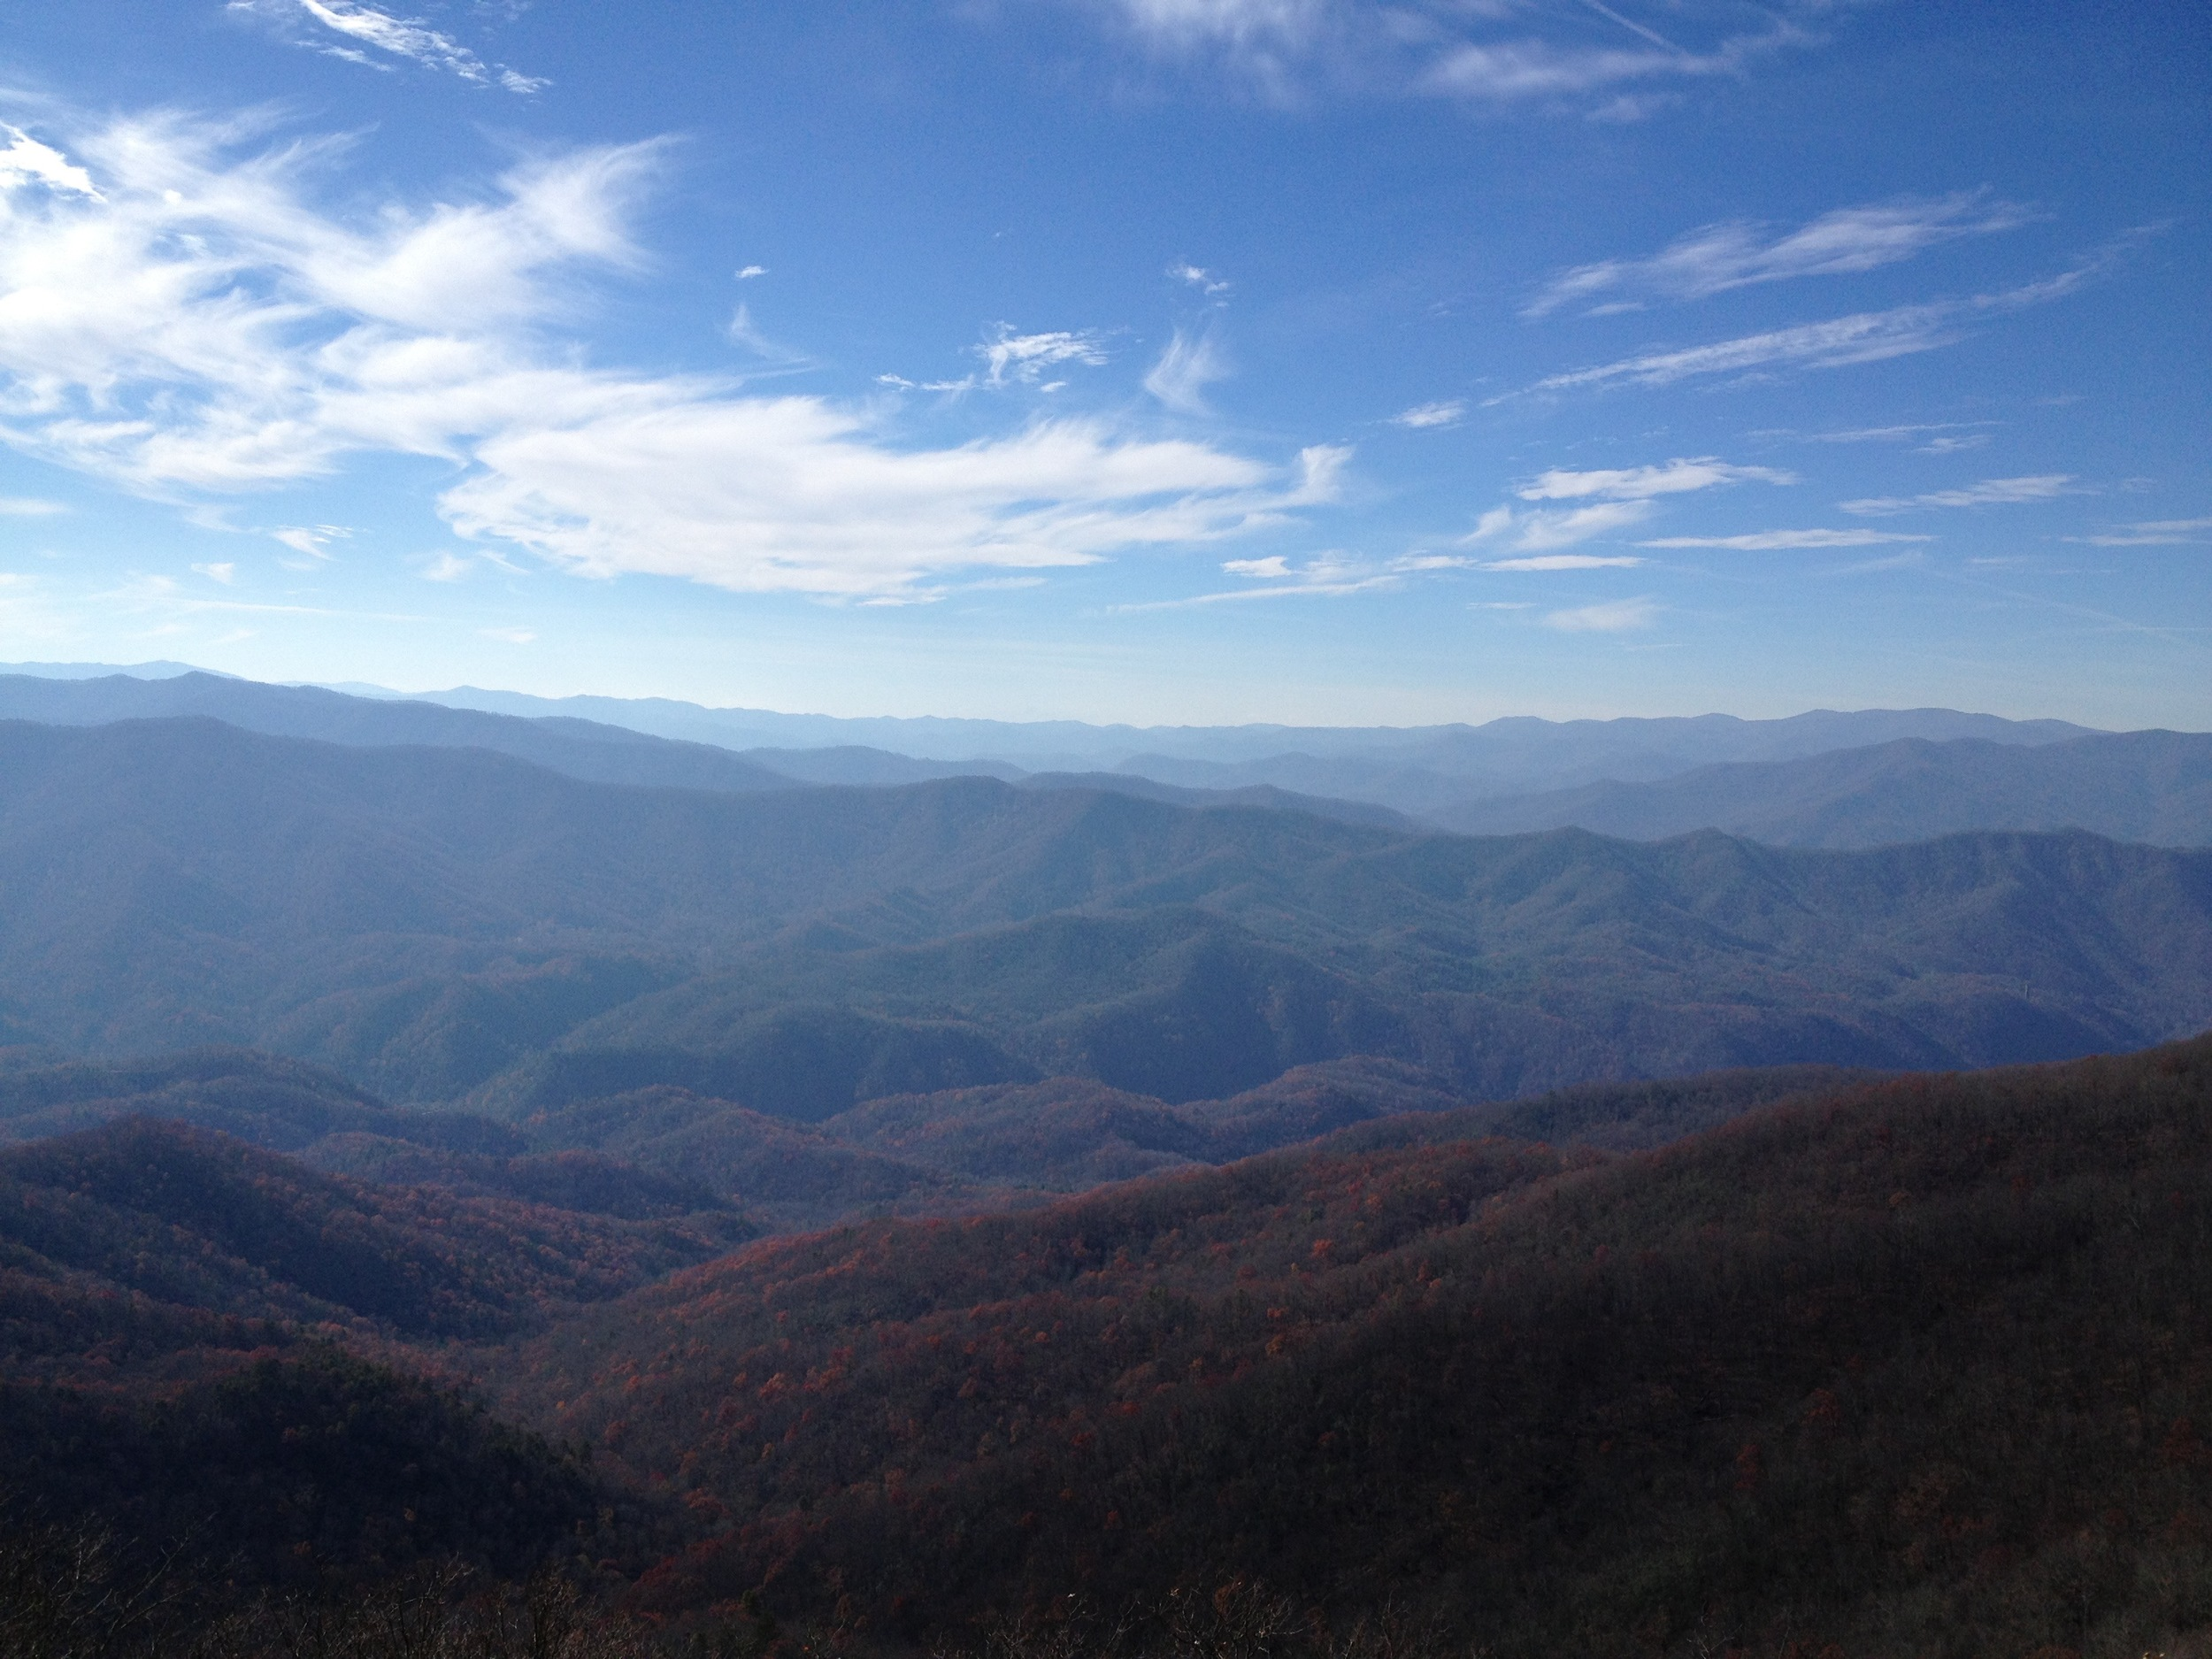 The view looking toward Nantahala National Forest from Shuckstack in the fall. It's easy to see why the mountains around us are called the Blue Ridge Mountains!